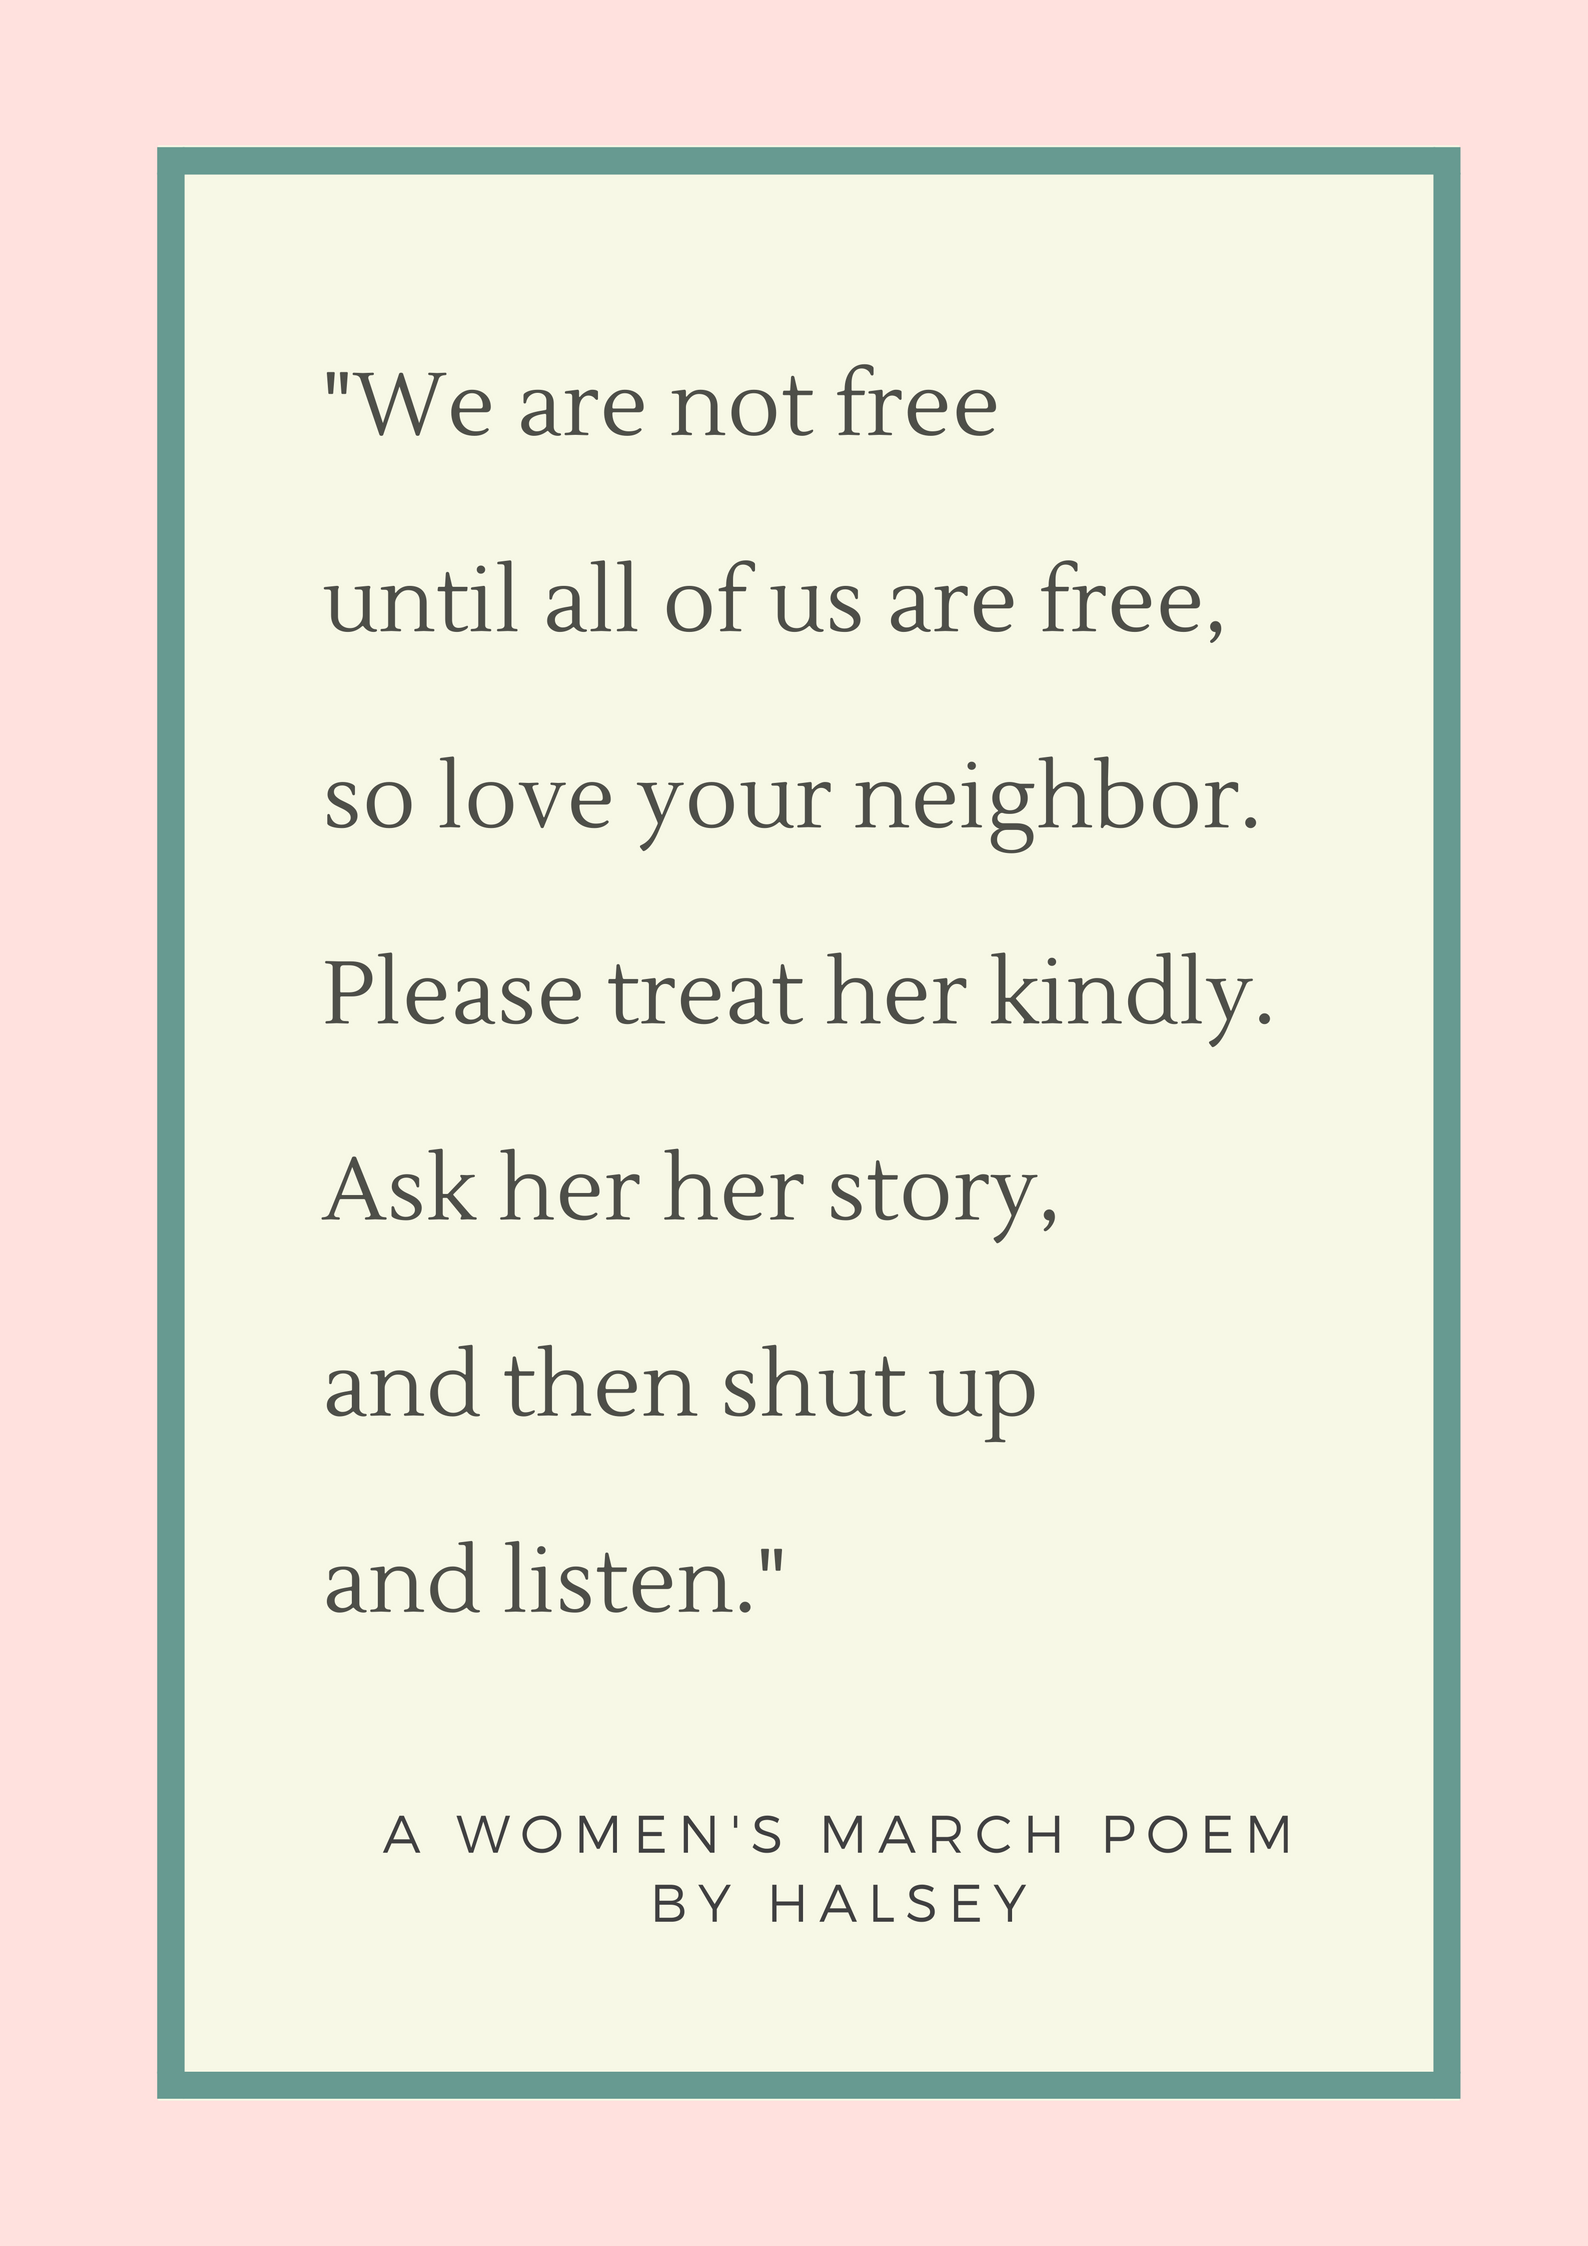 Remarkable, poems about sexual assault idea